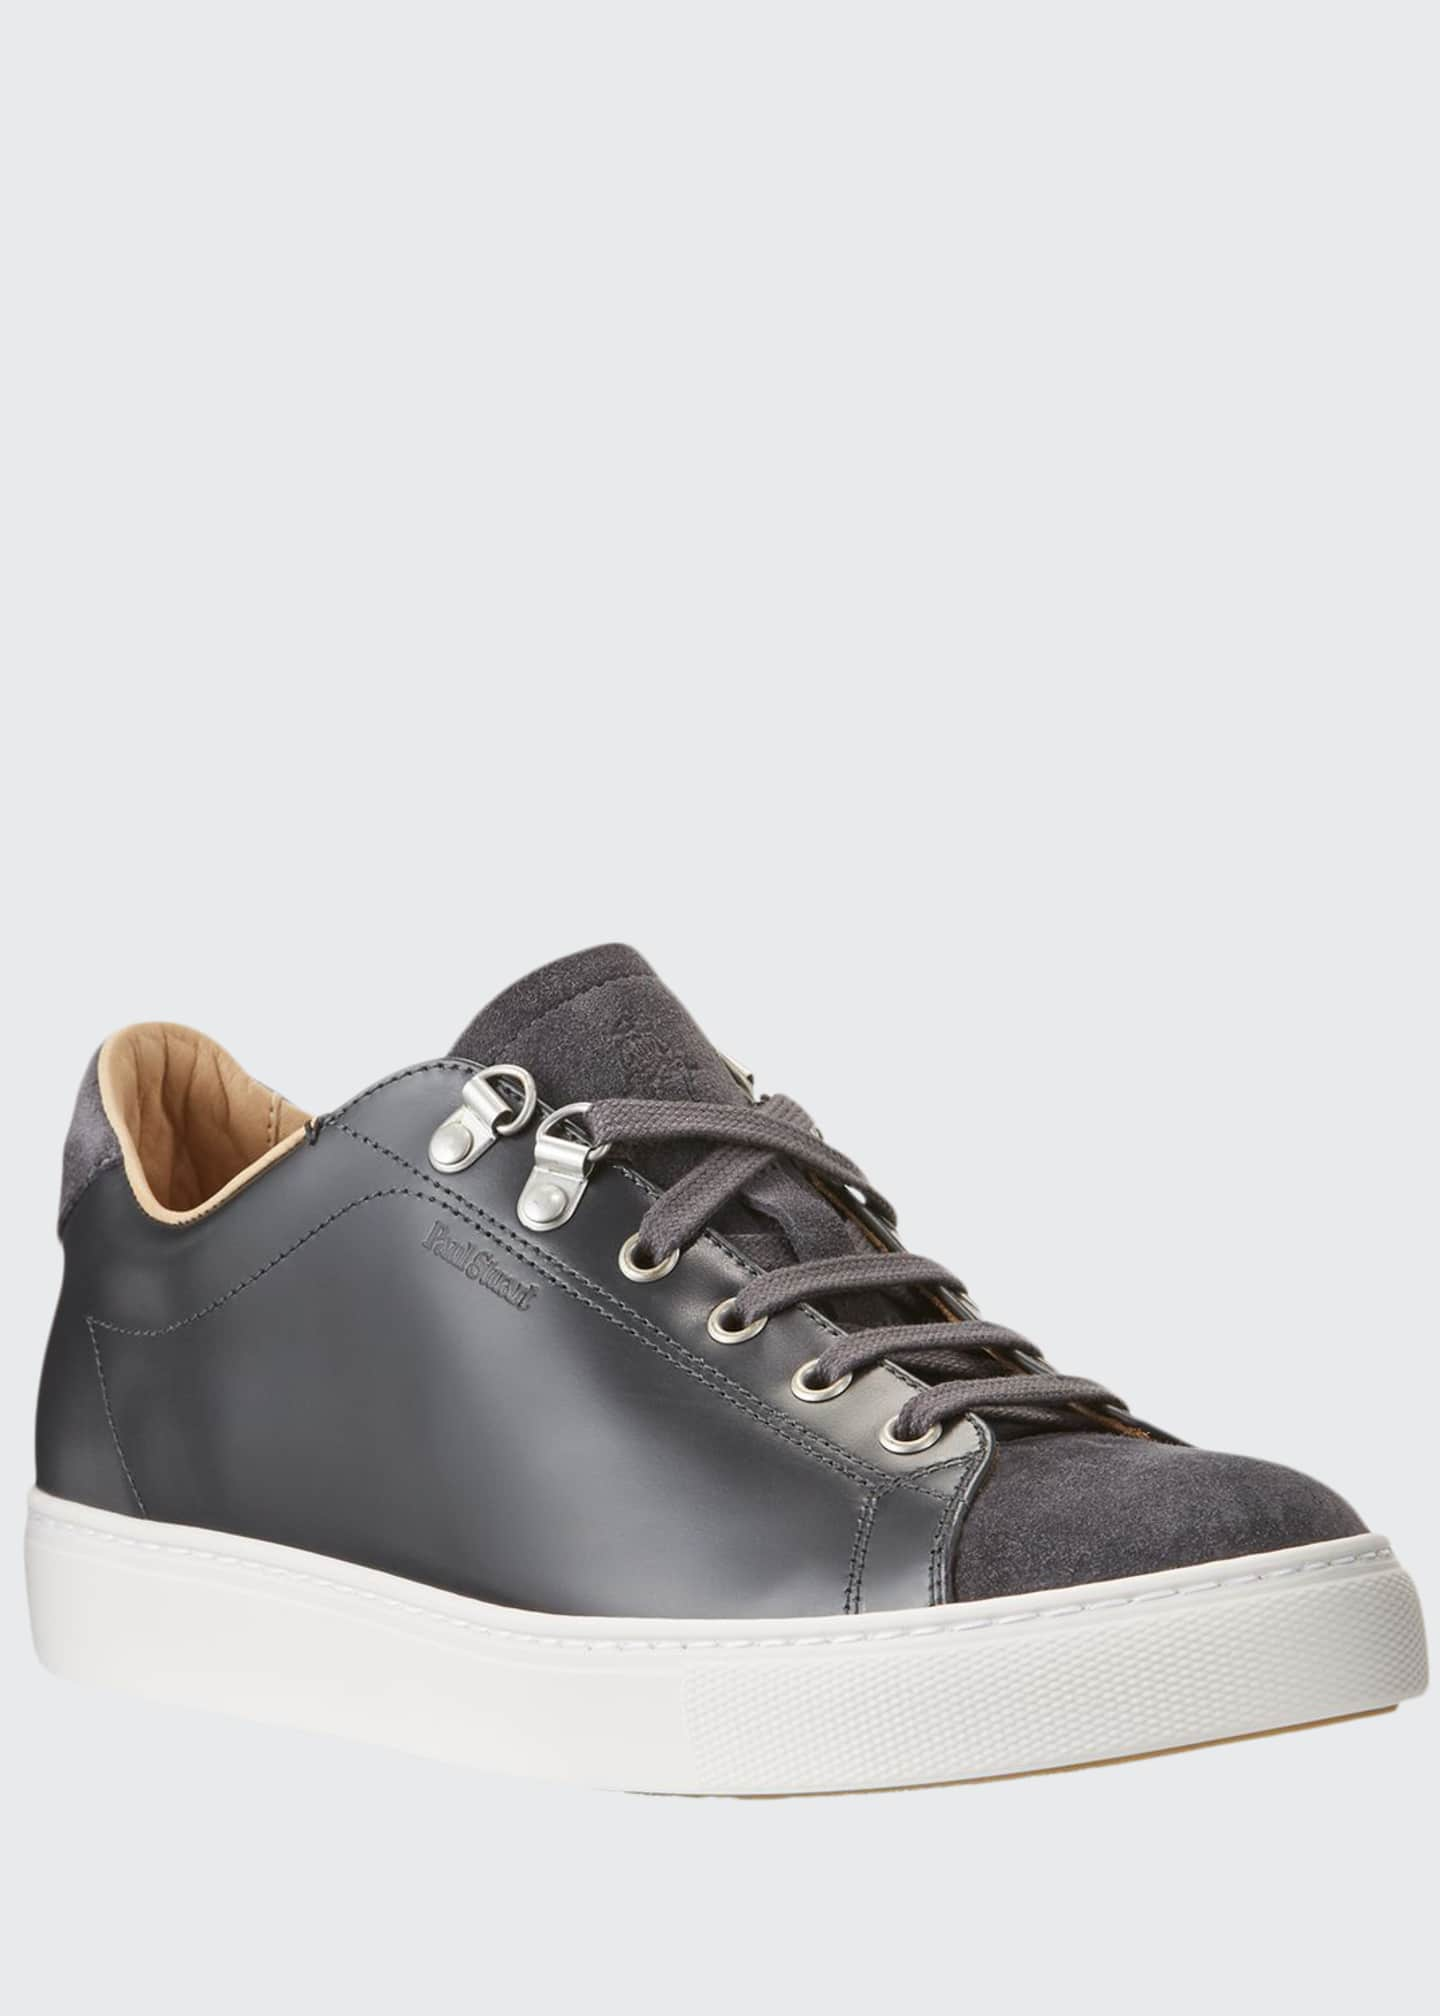 Image 1 of 5: Men's Game Suede Low-Top Sneakers